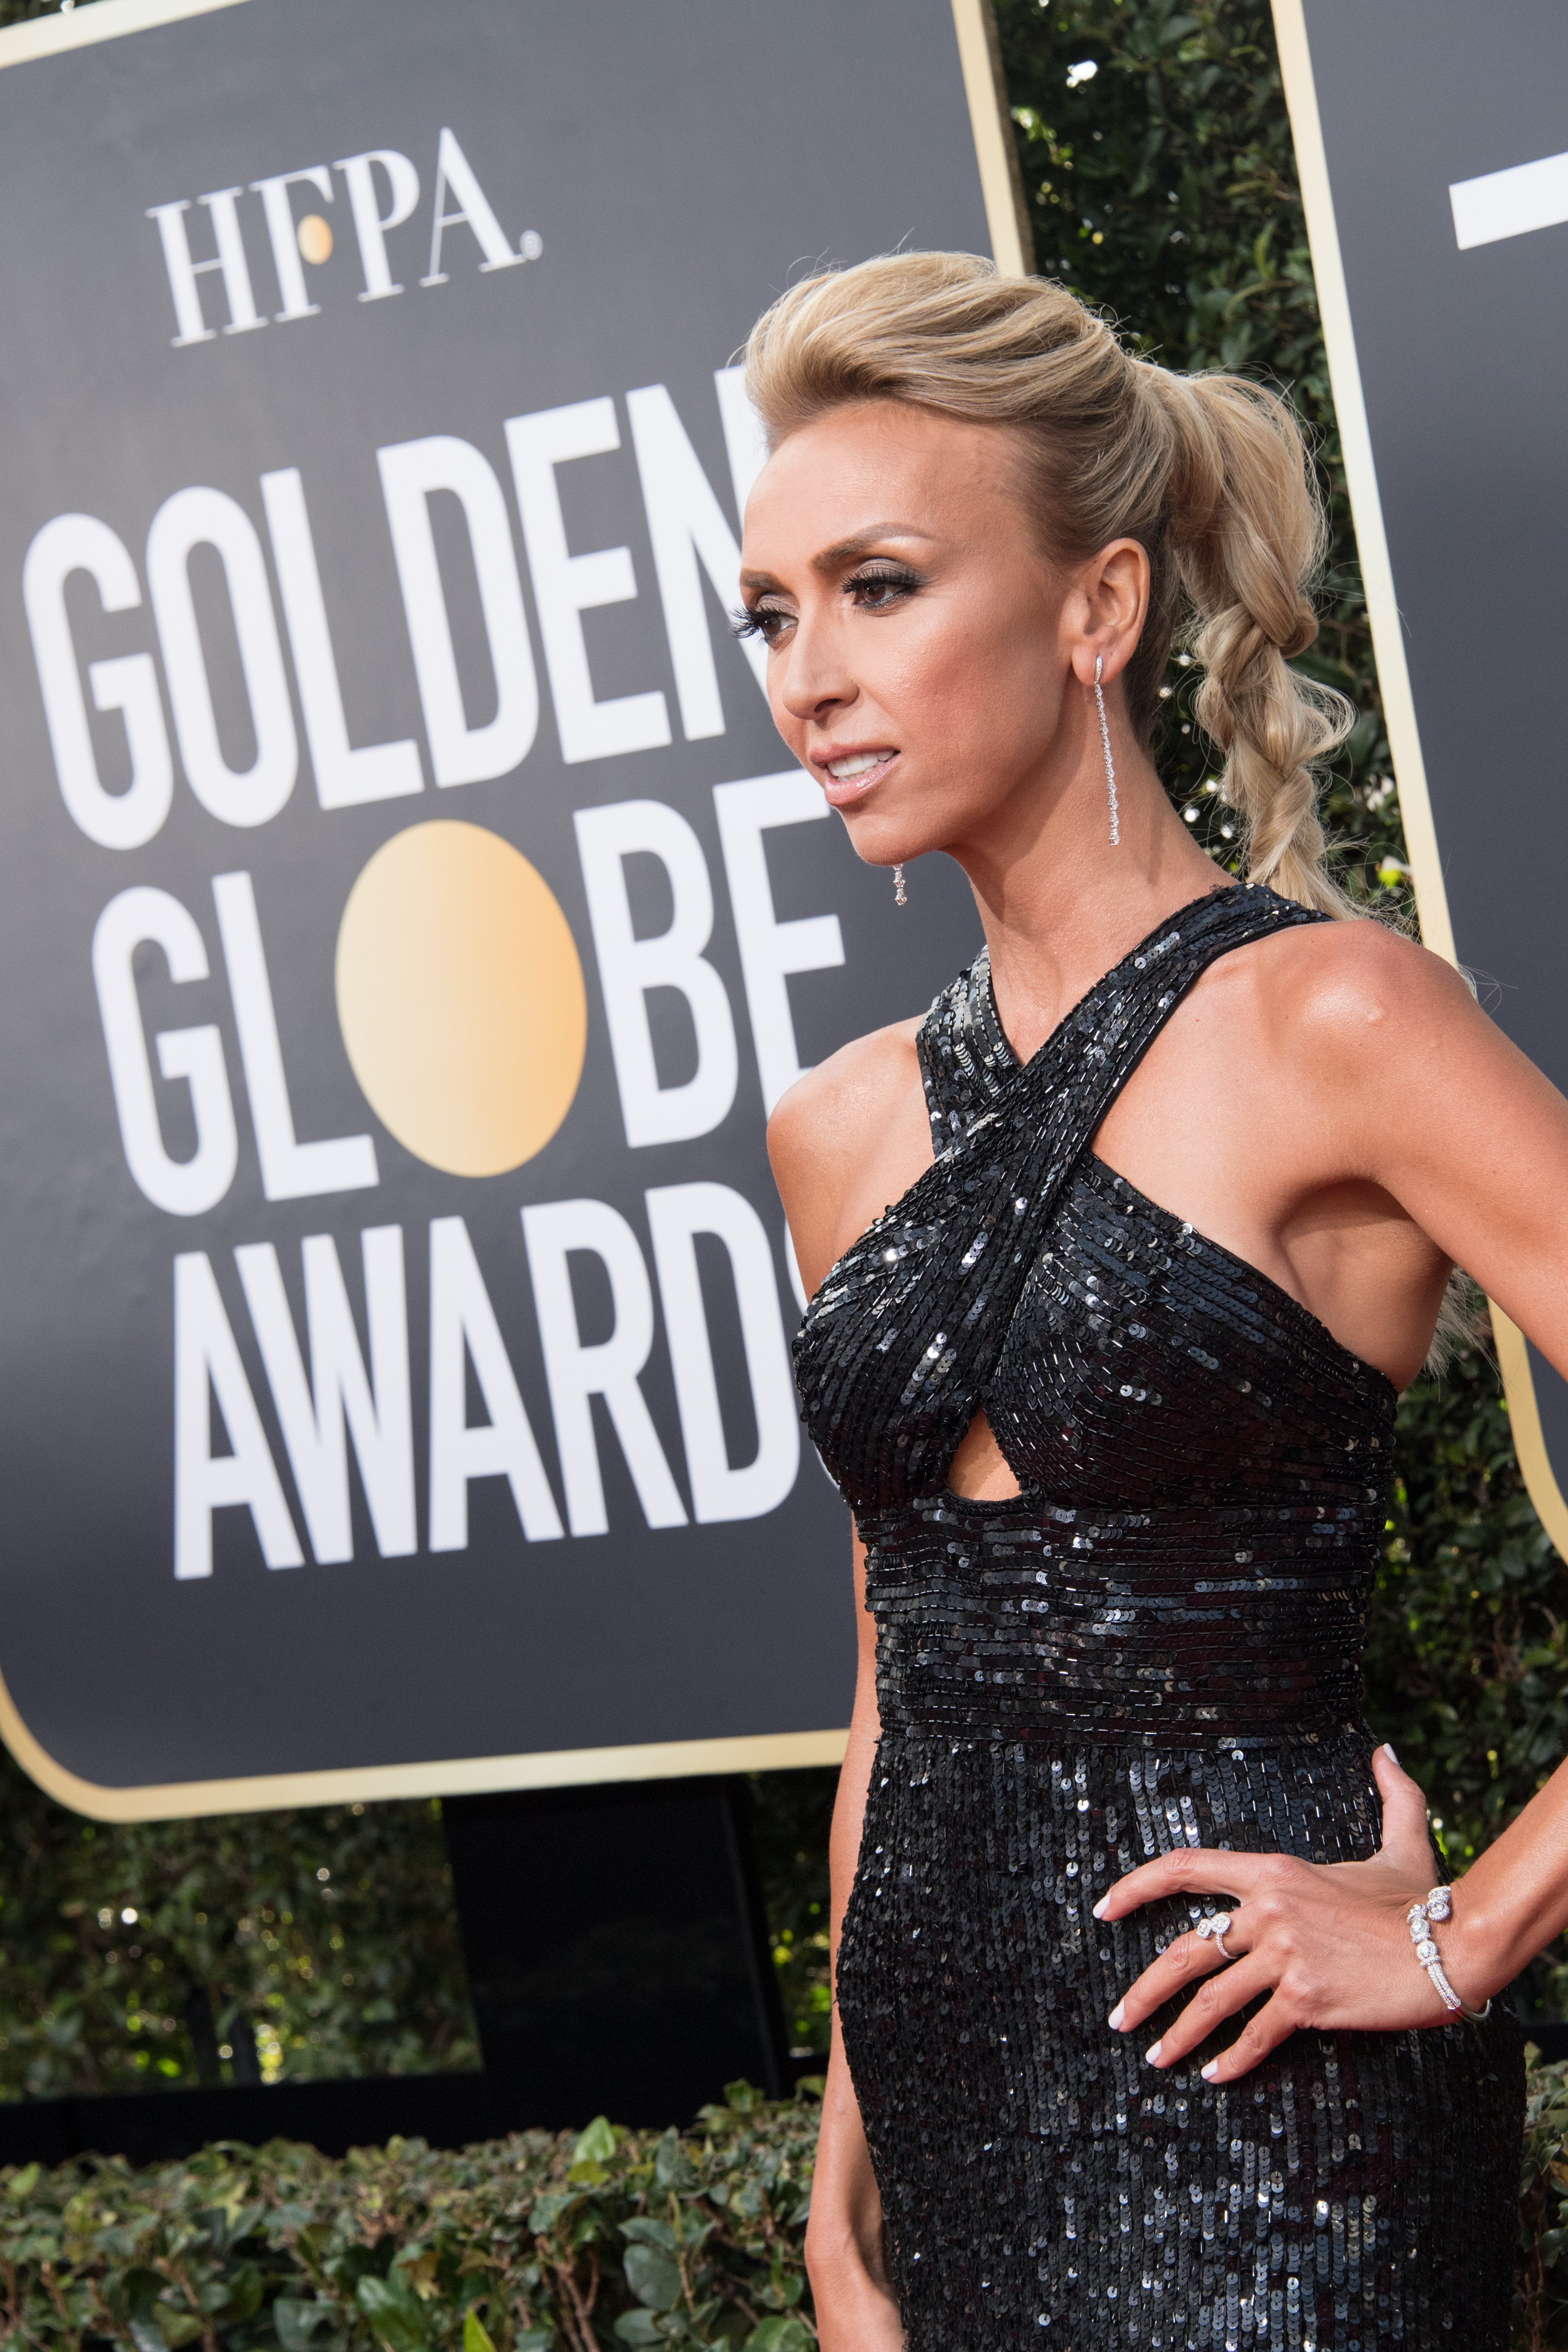 Giuliana Rancic arrives at the 75th Annual Golden Globe Awards at the Beverly Hilton in Beverly Hills, CA on Sunday, January 7, 2018.